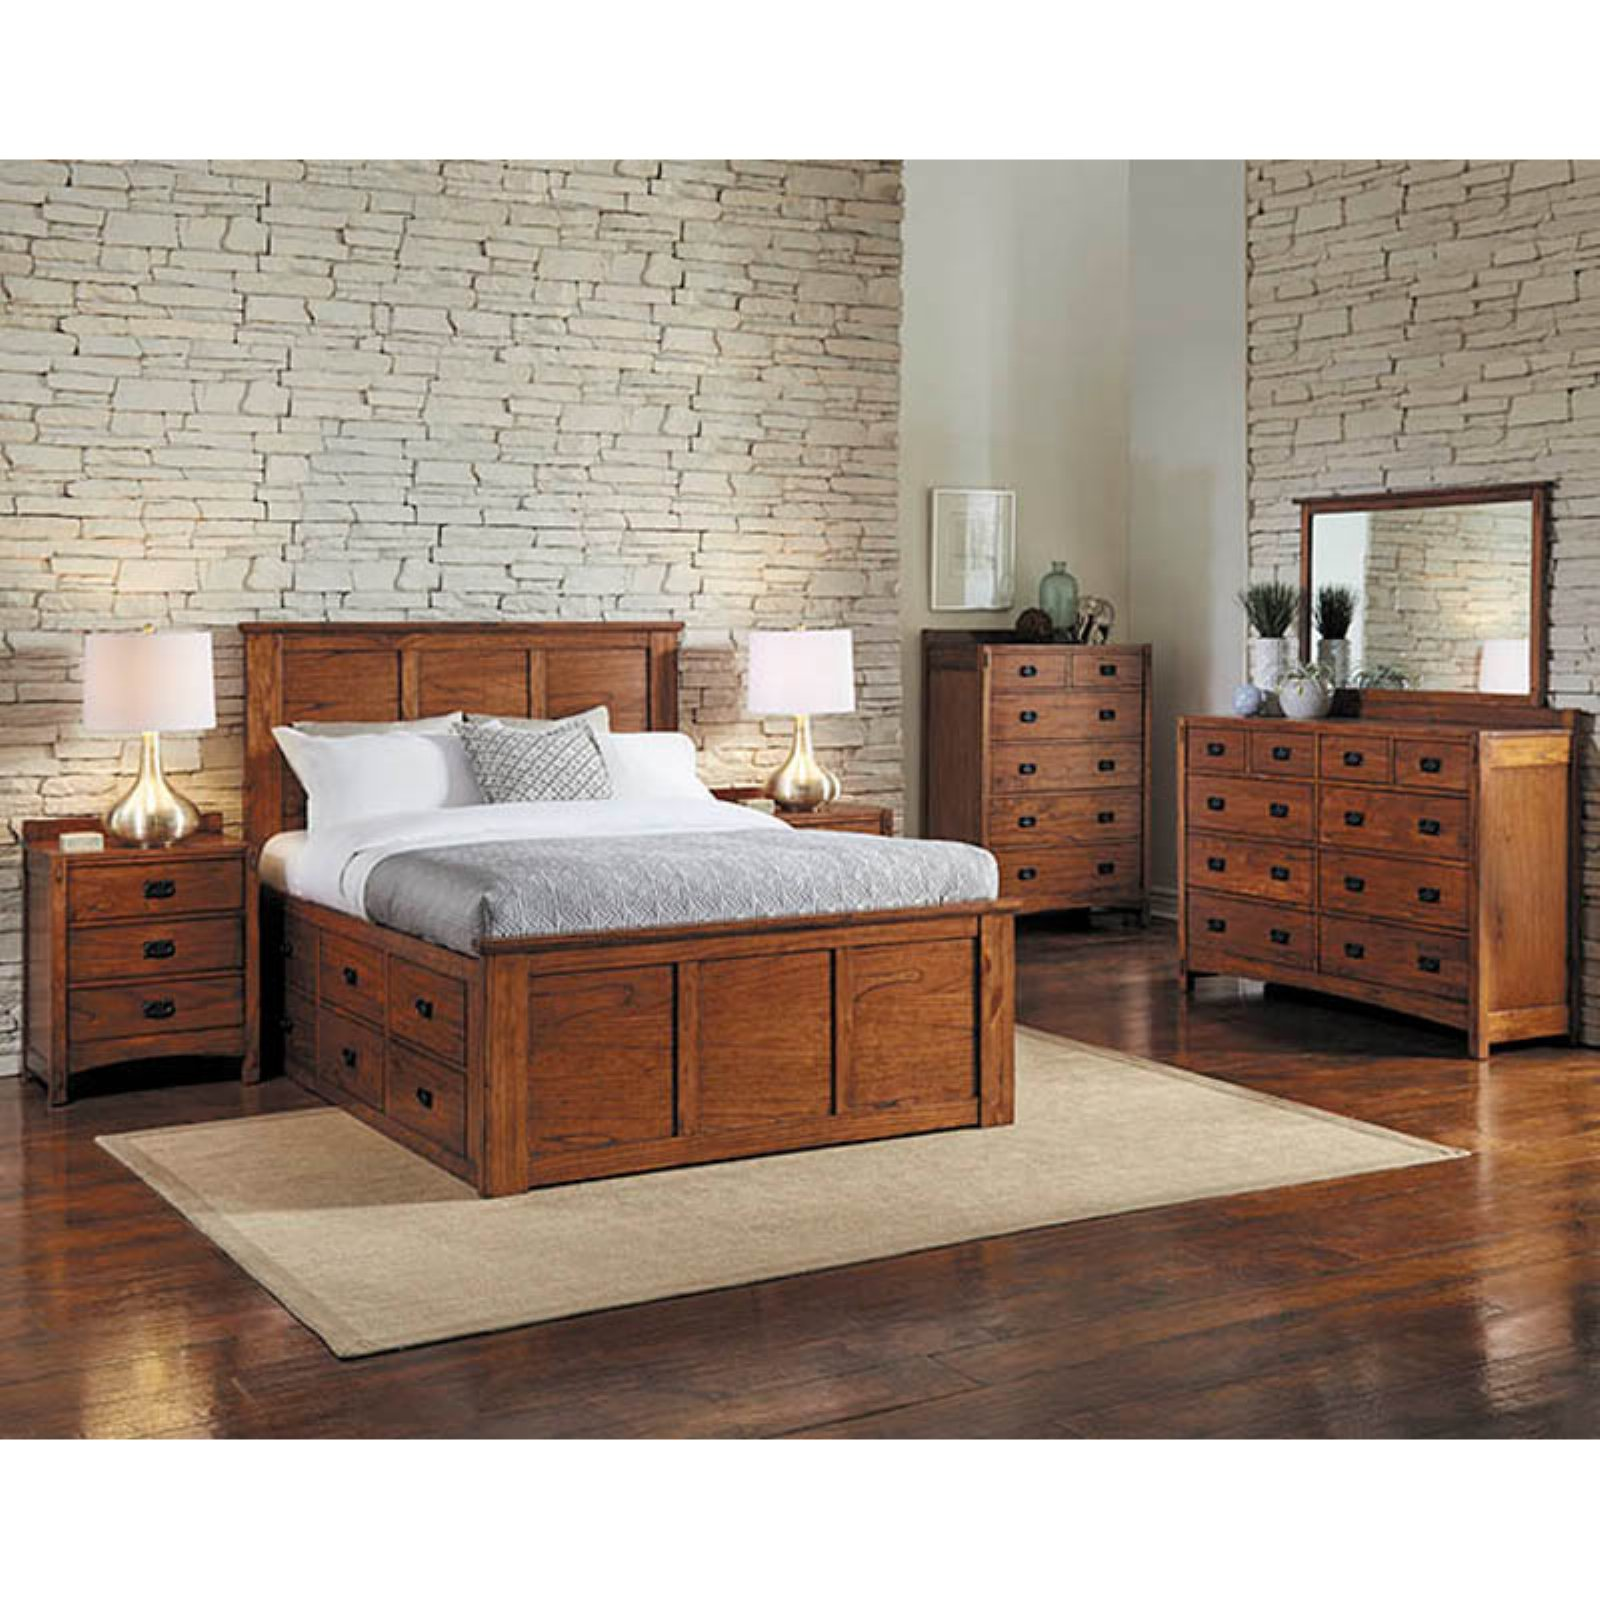 Charmant A America Mission Hills Storage Bed